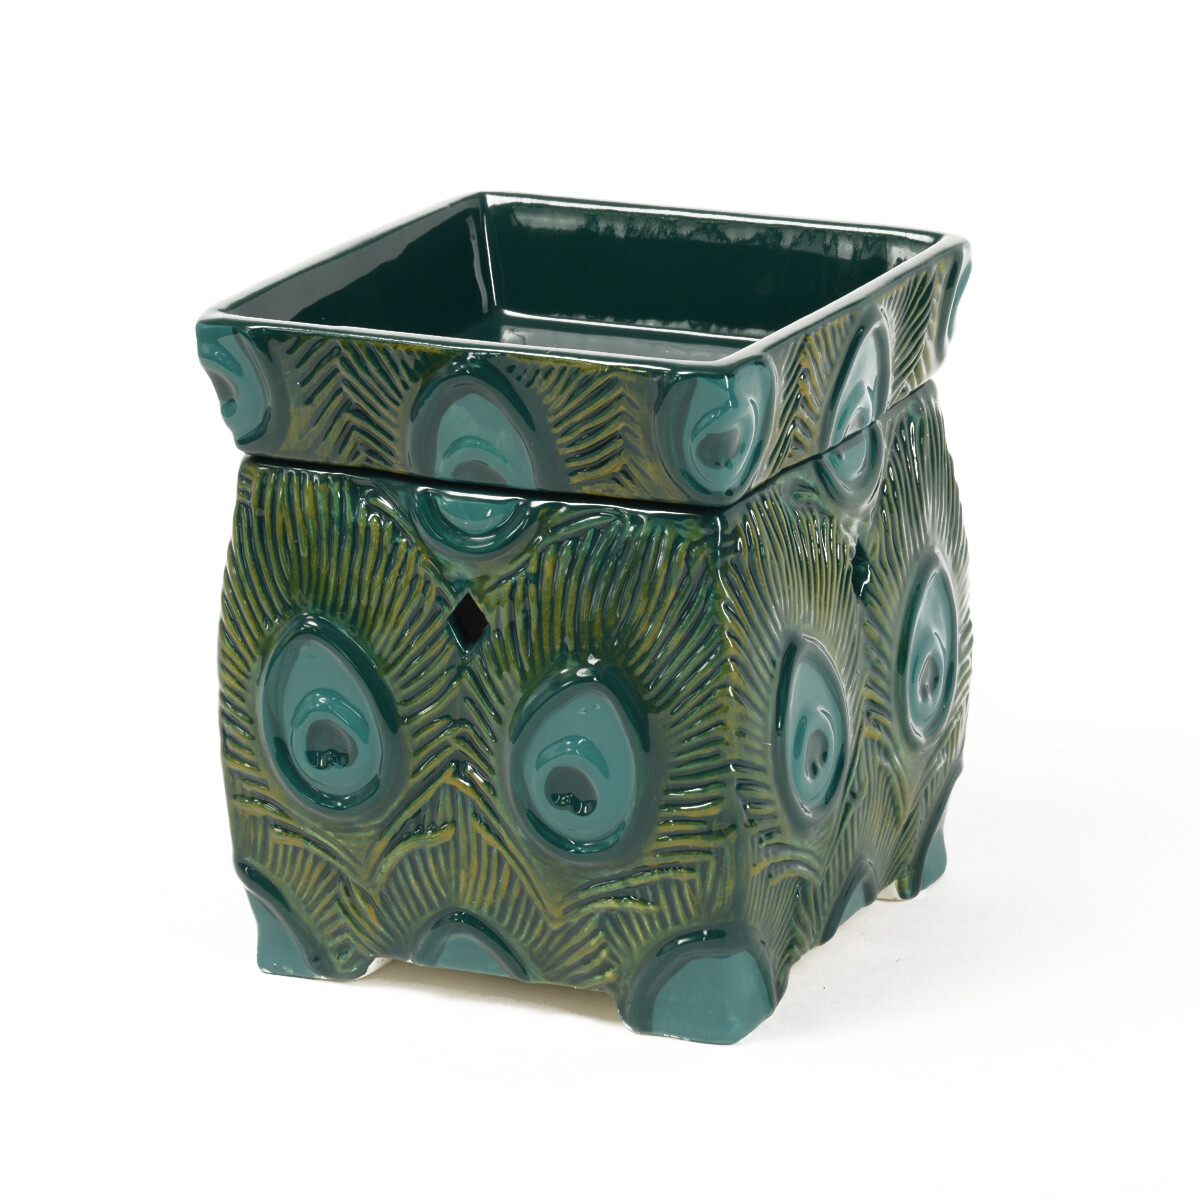 Tyler Candle Co. Exotic Peacock Fragrance Warmer